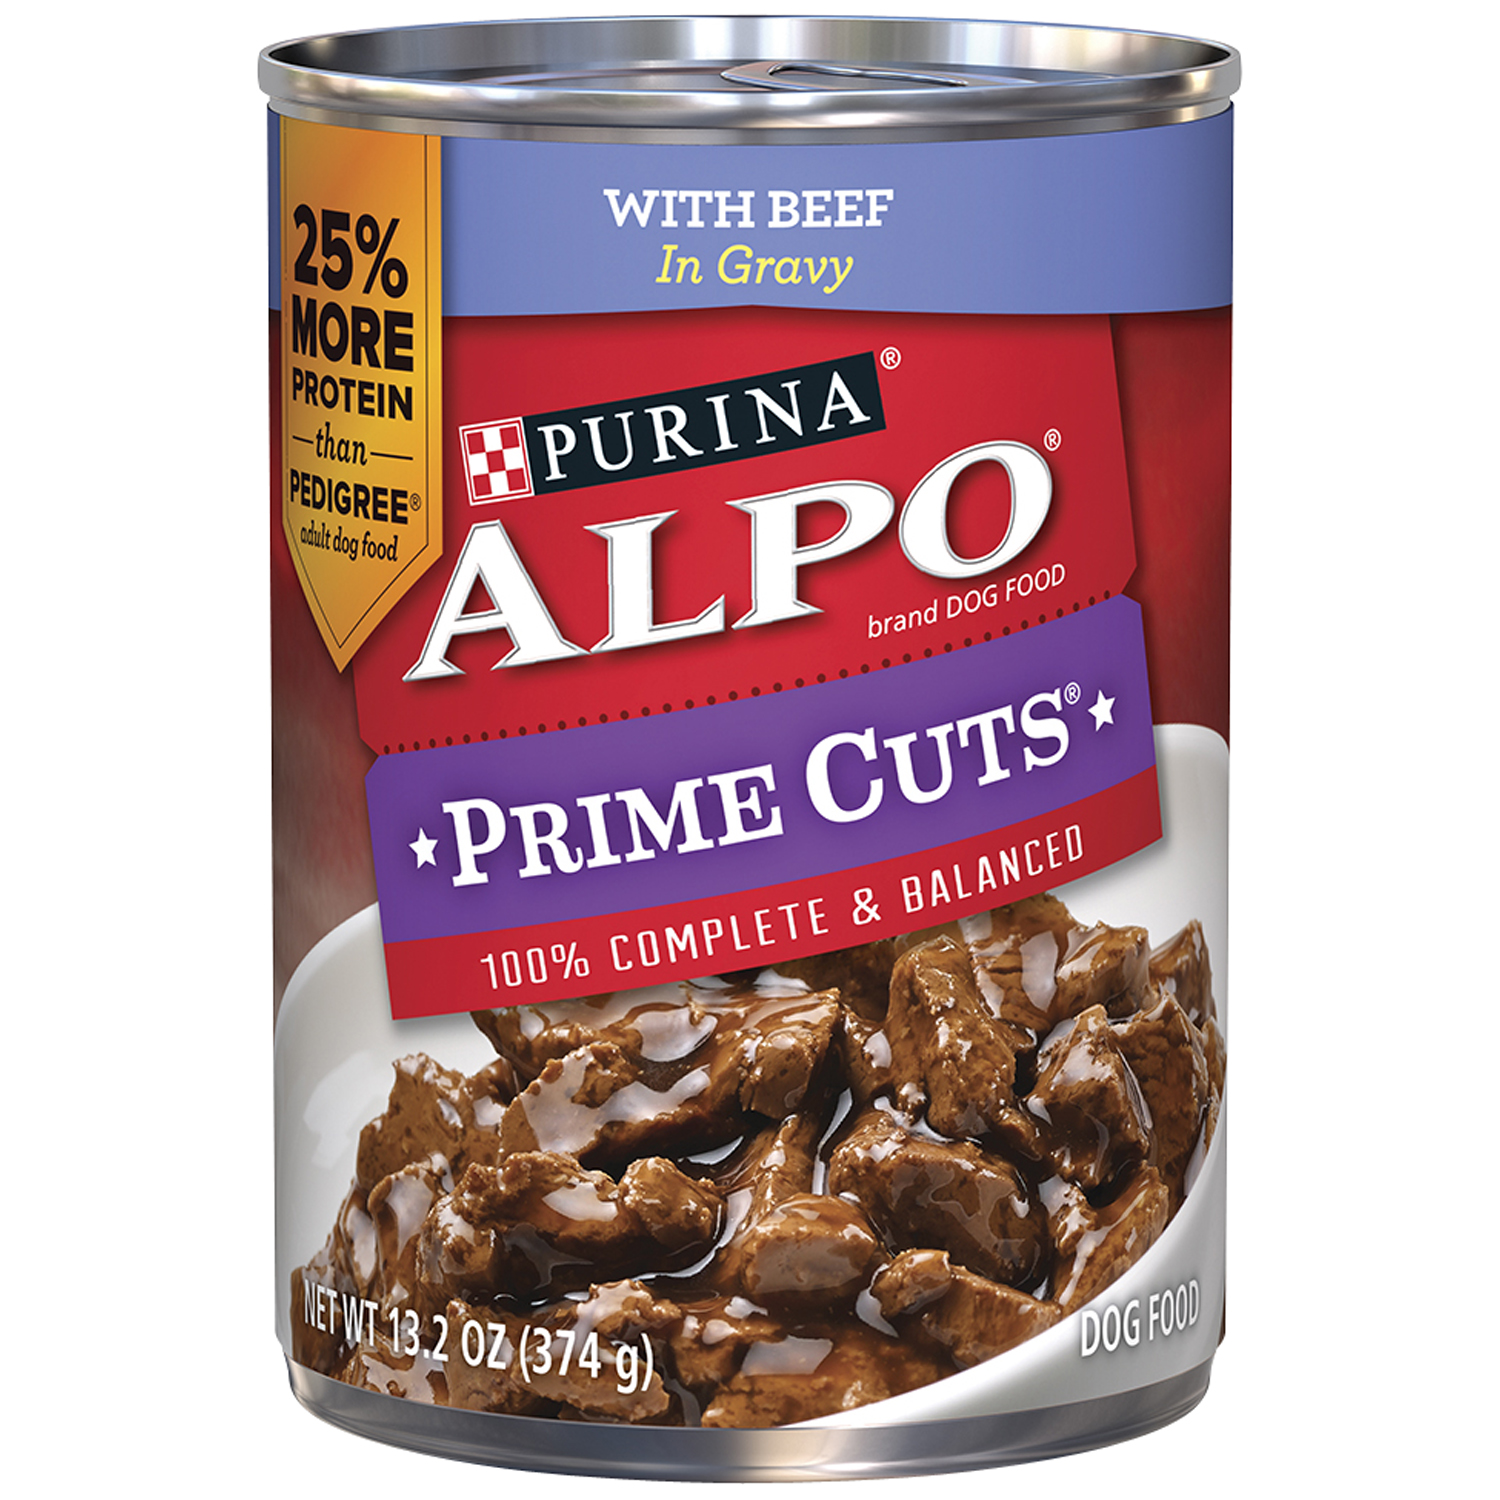 Purina ALPO Prime Cuts with Beef Canned Dog Food, 13.2 Oz